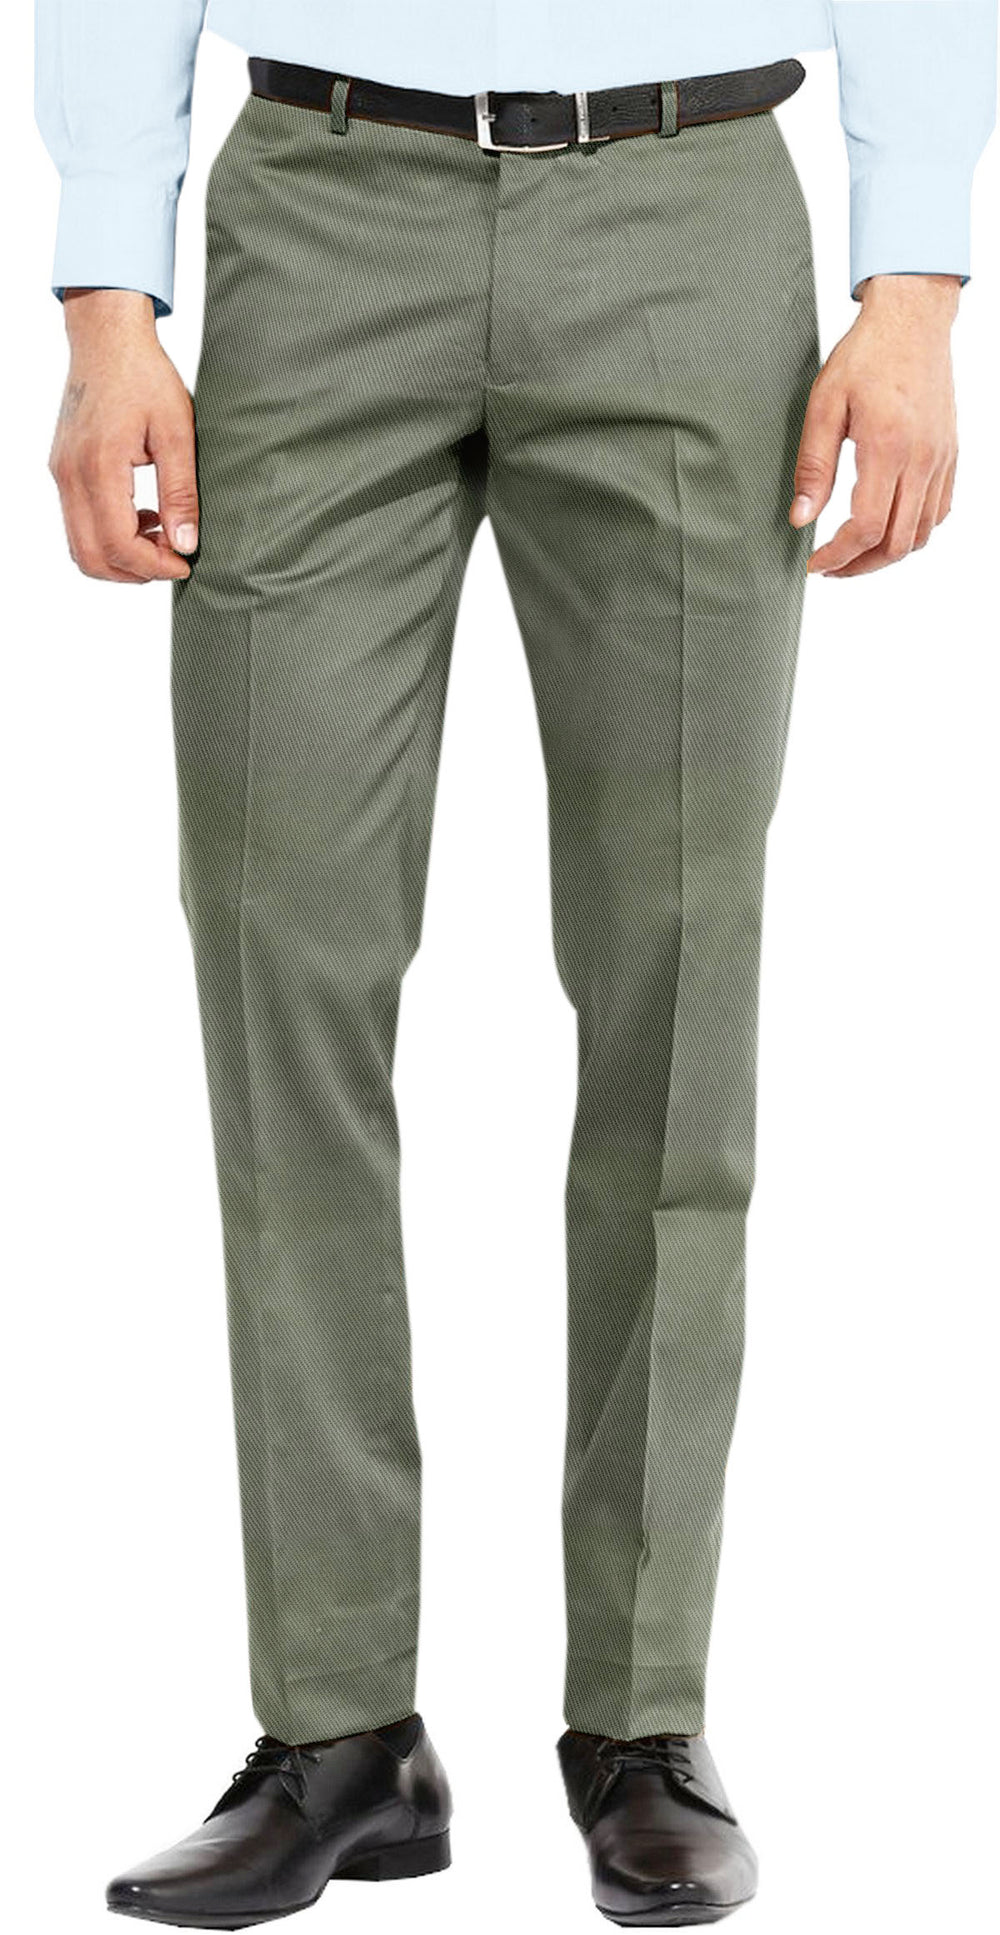 Antique Bronze Light Twill Chino